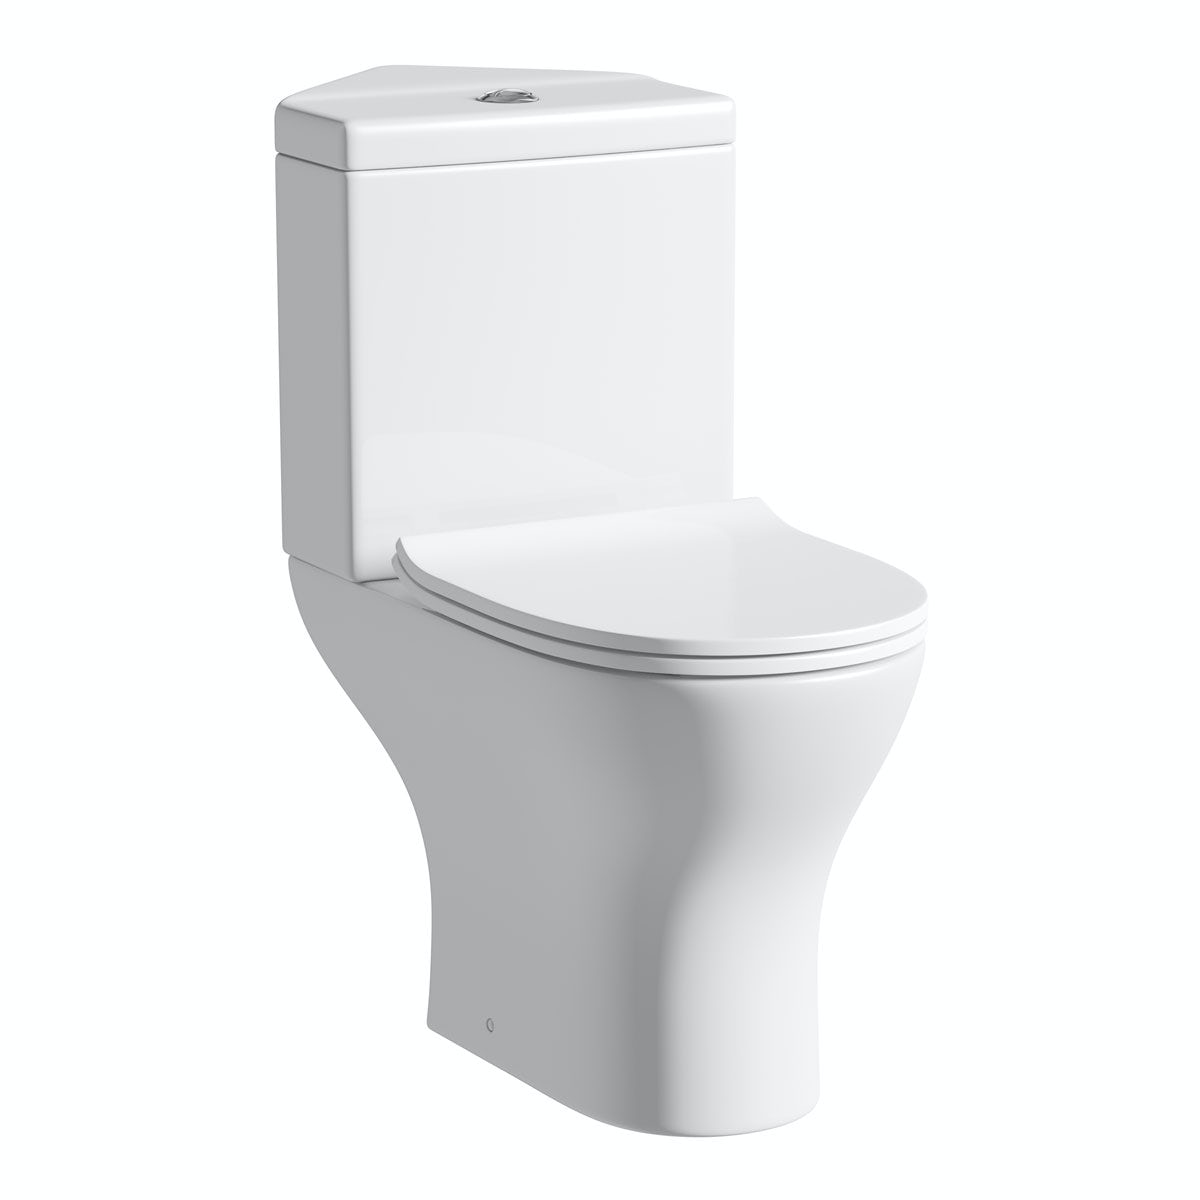 Orchard Derwent Round Compact Corner Close Coupled Toilet